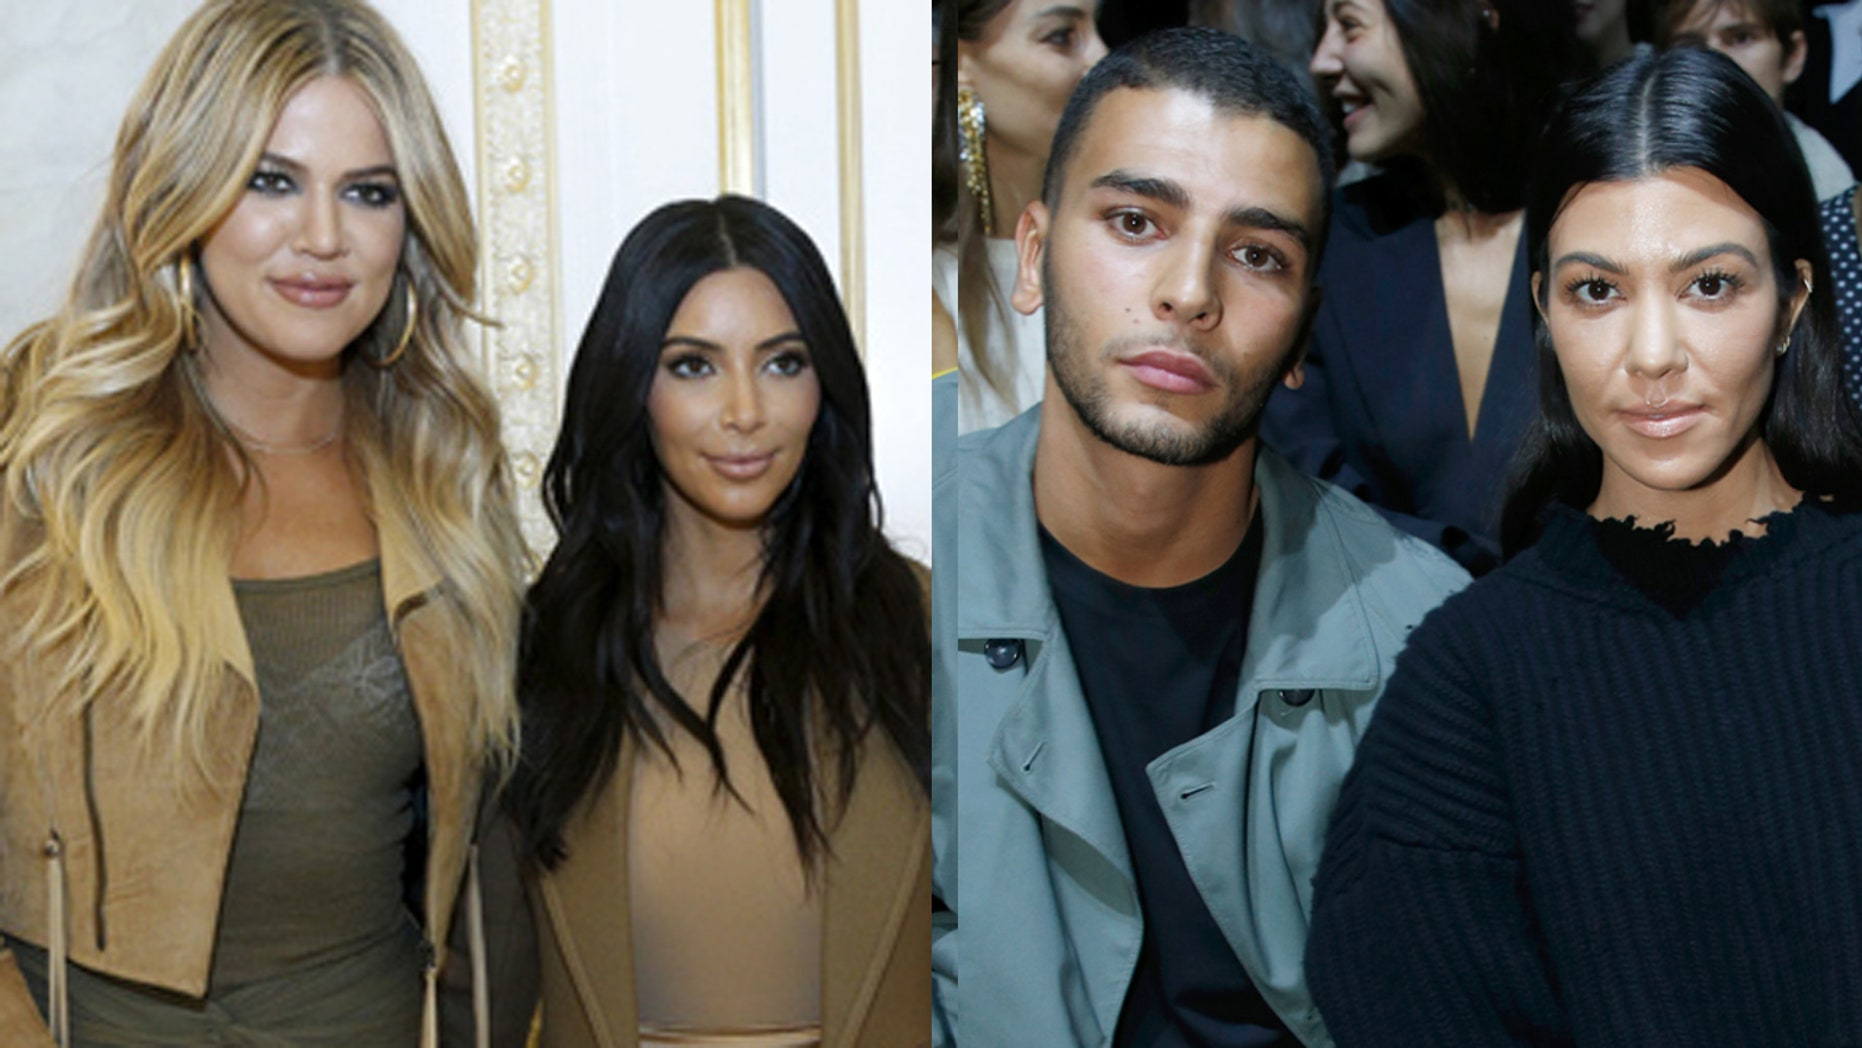 Kim and Khloe Kardashian defended their sister Kourtney after her now ex-boyfriend Younes Bendjima lashed out on social media about the breakup.